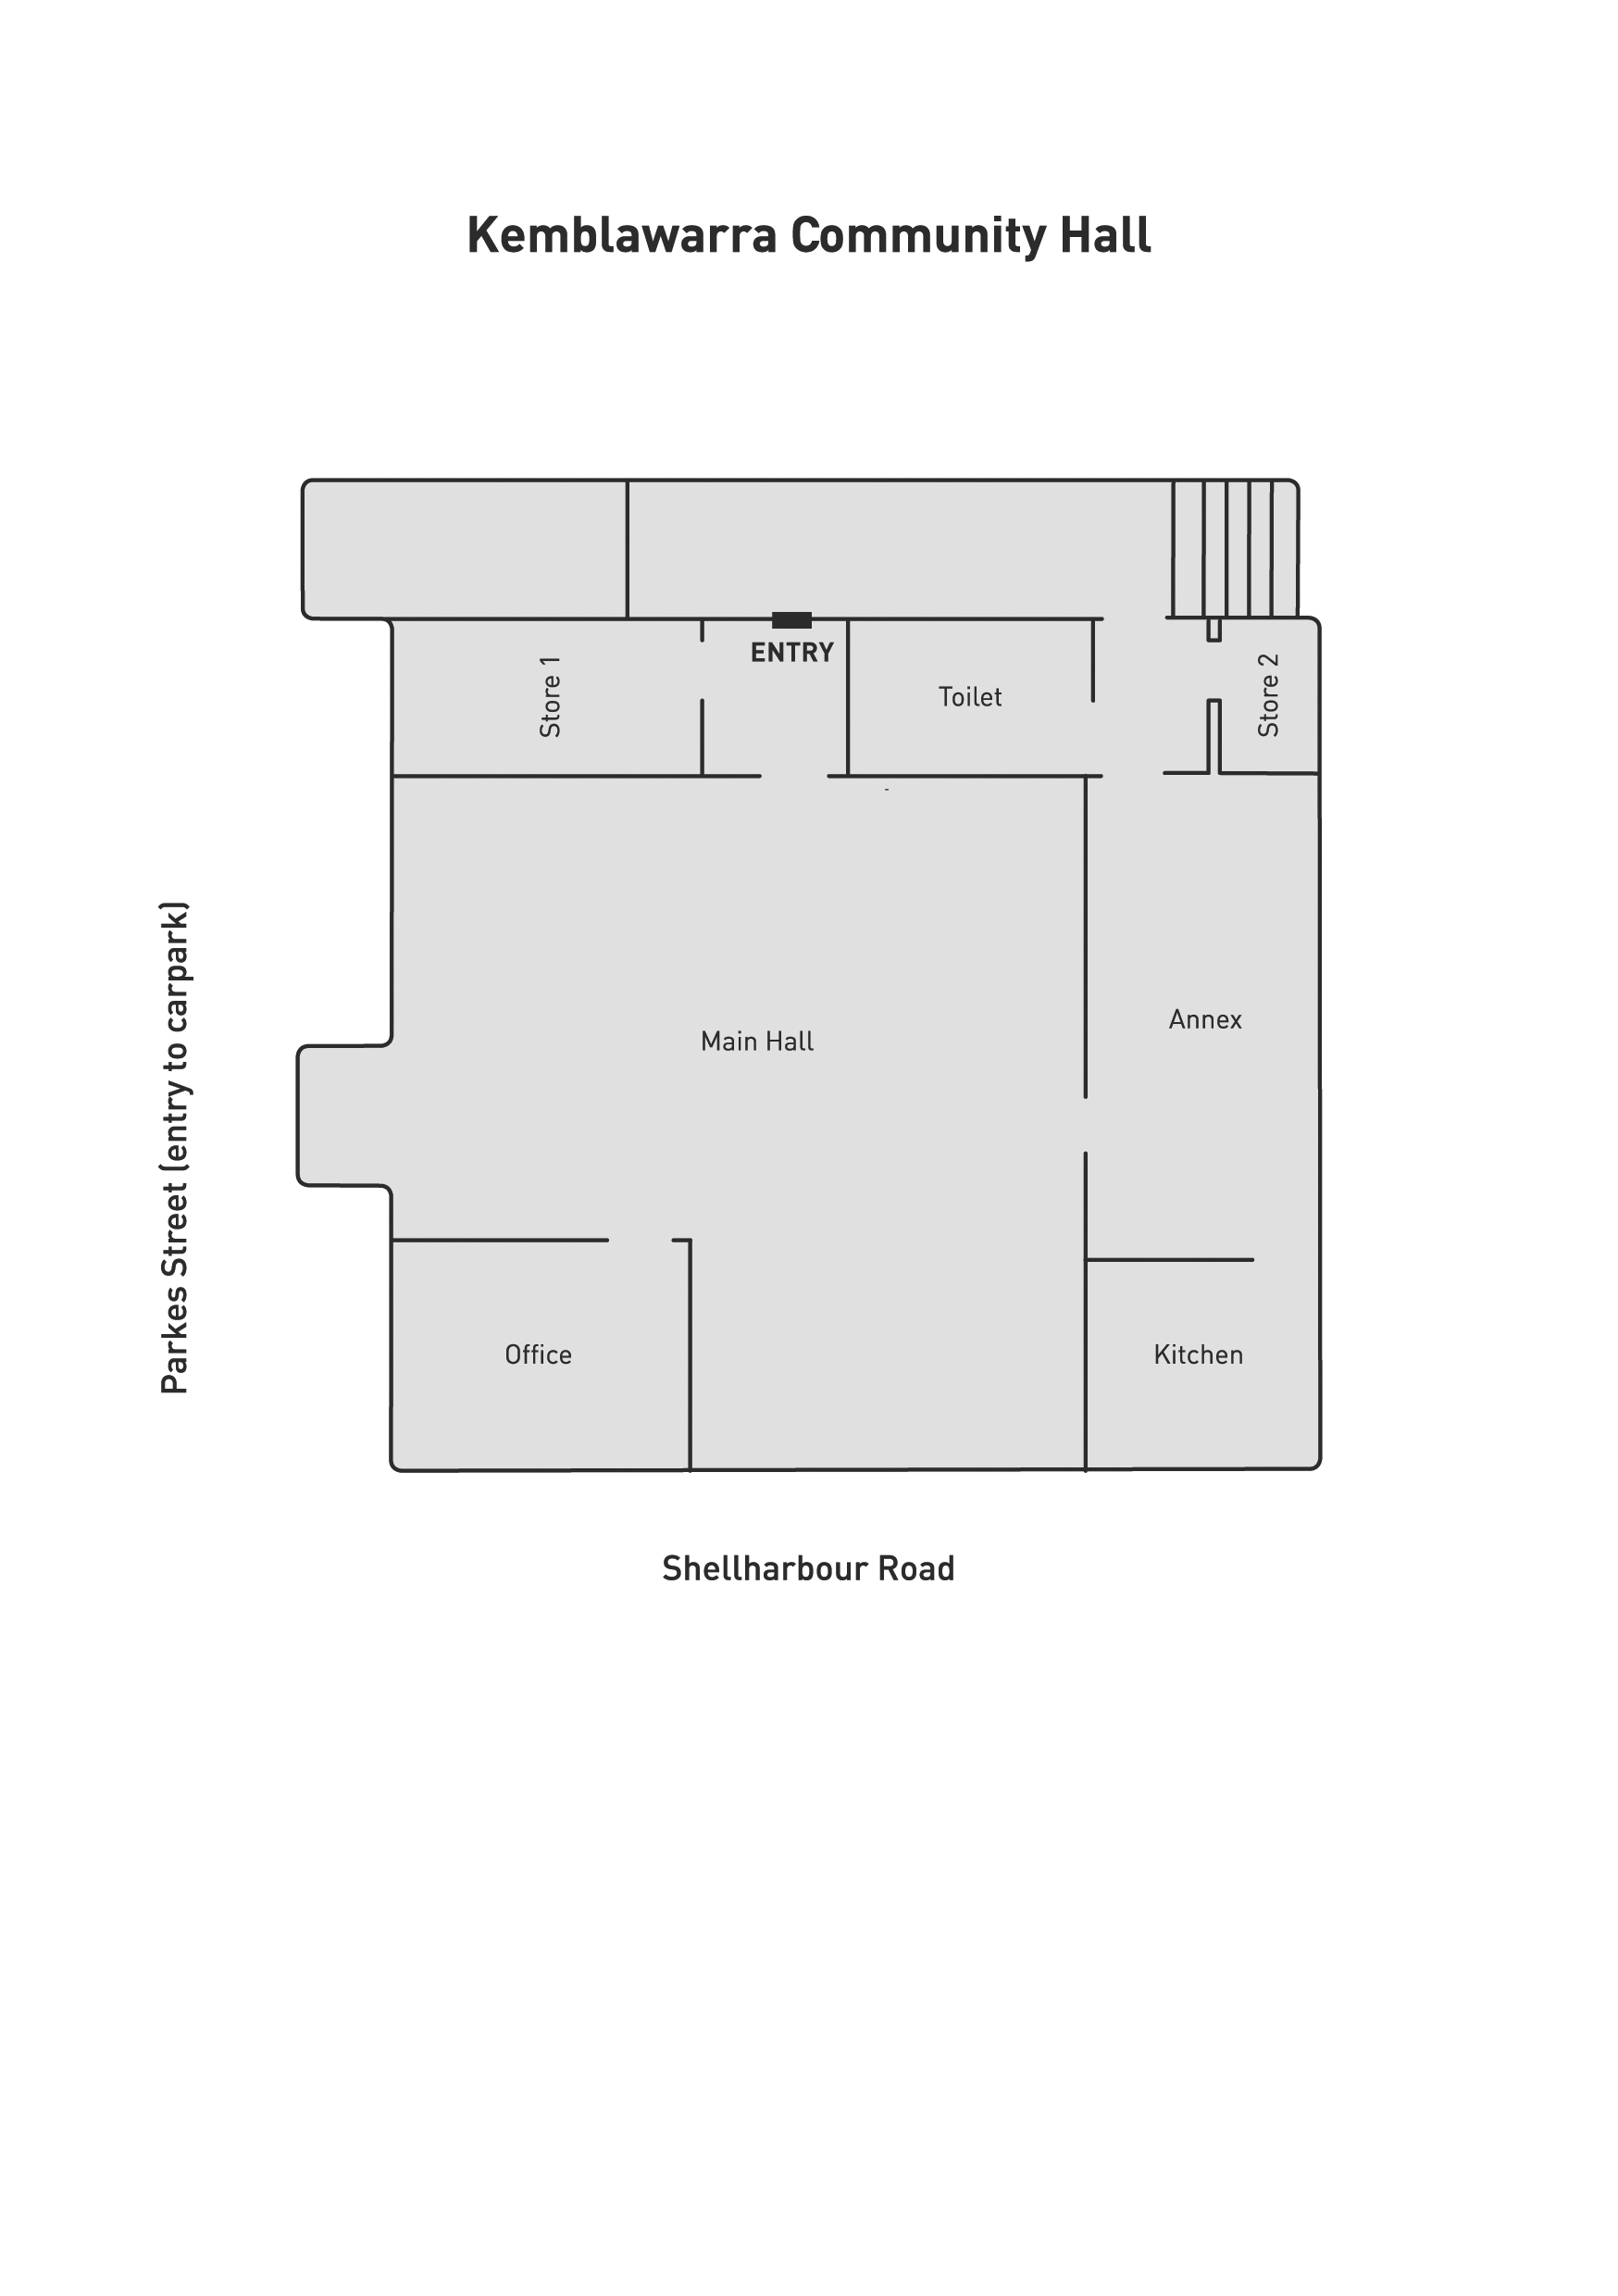 Kemblawarra Community Hall Floorplan